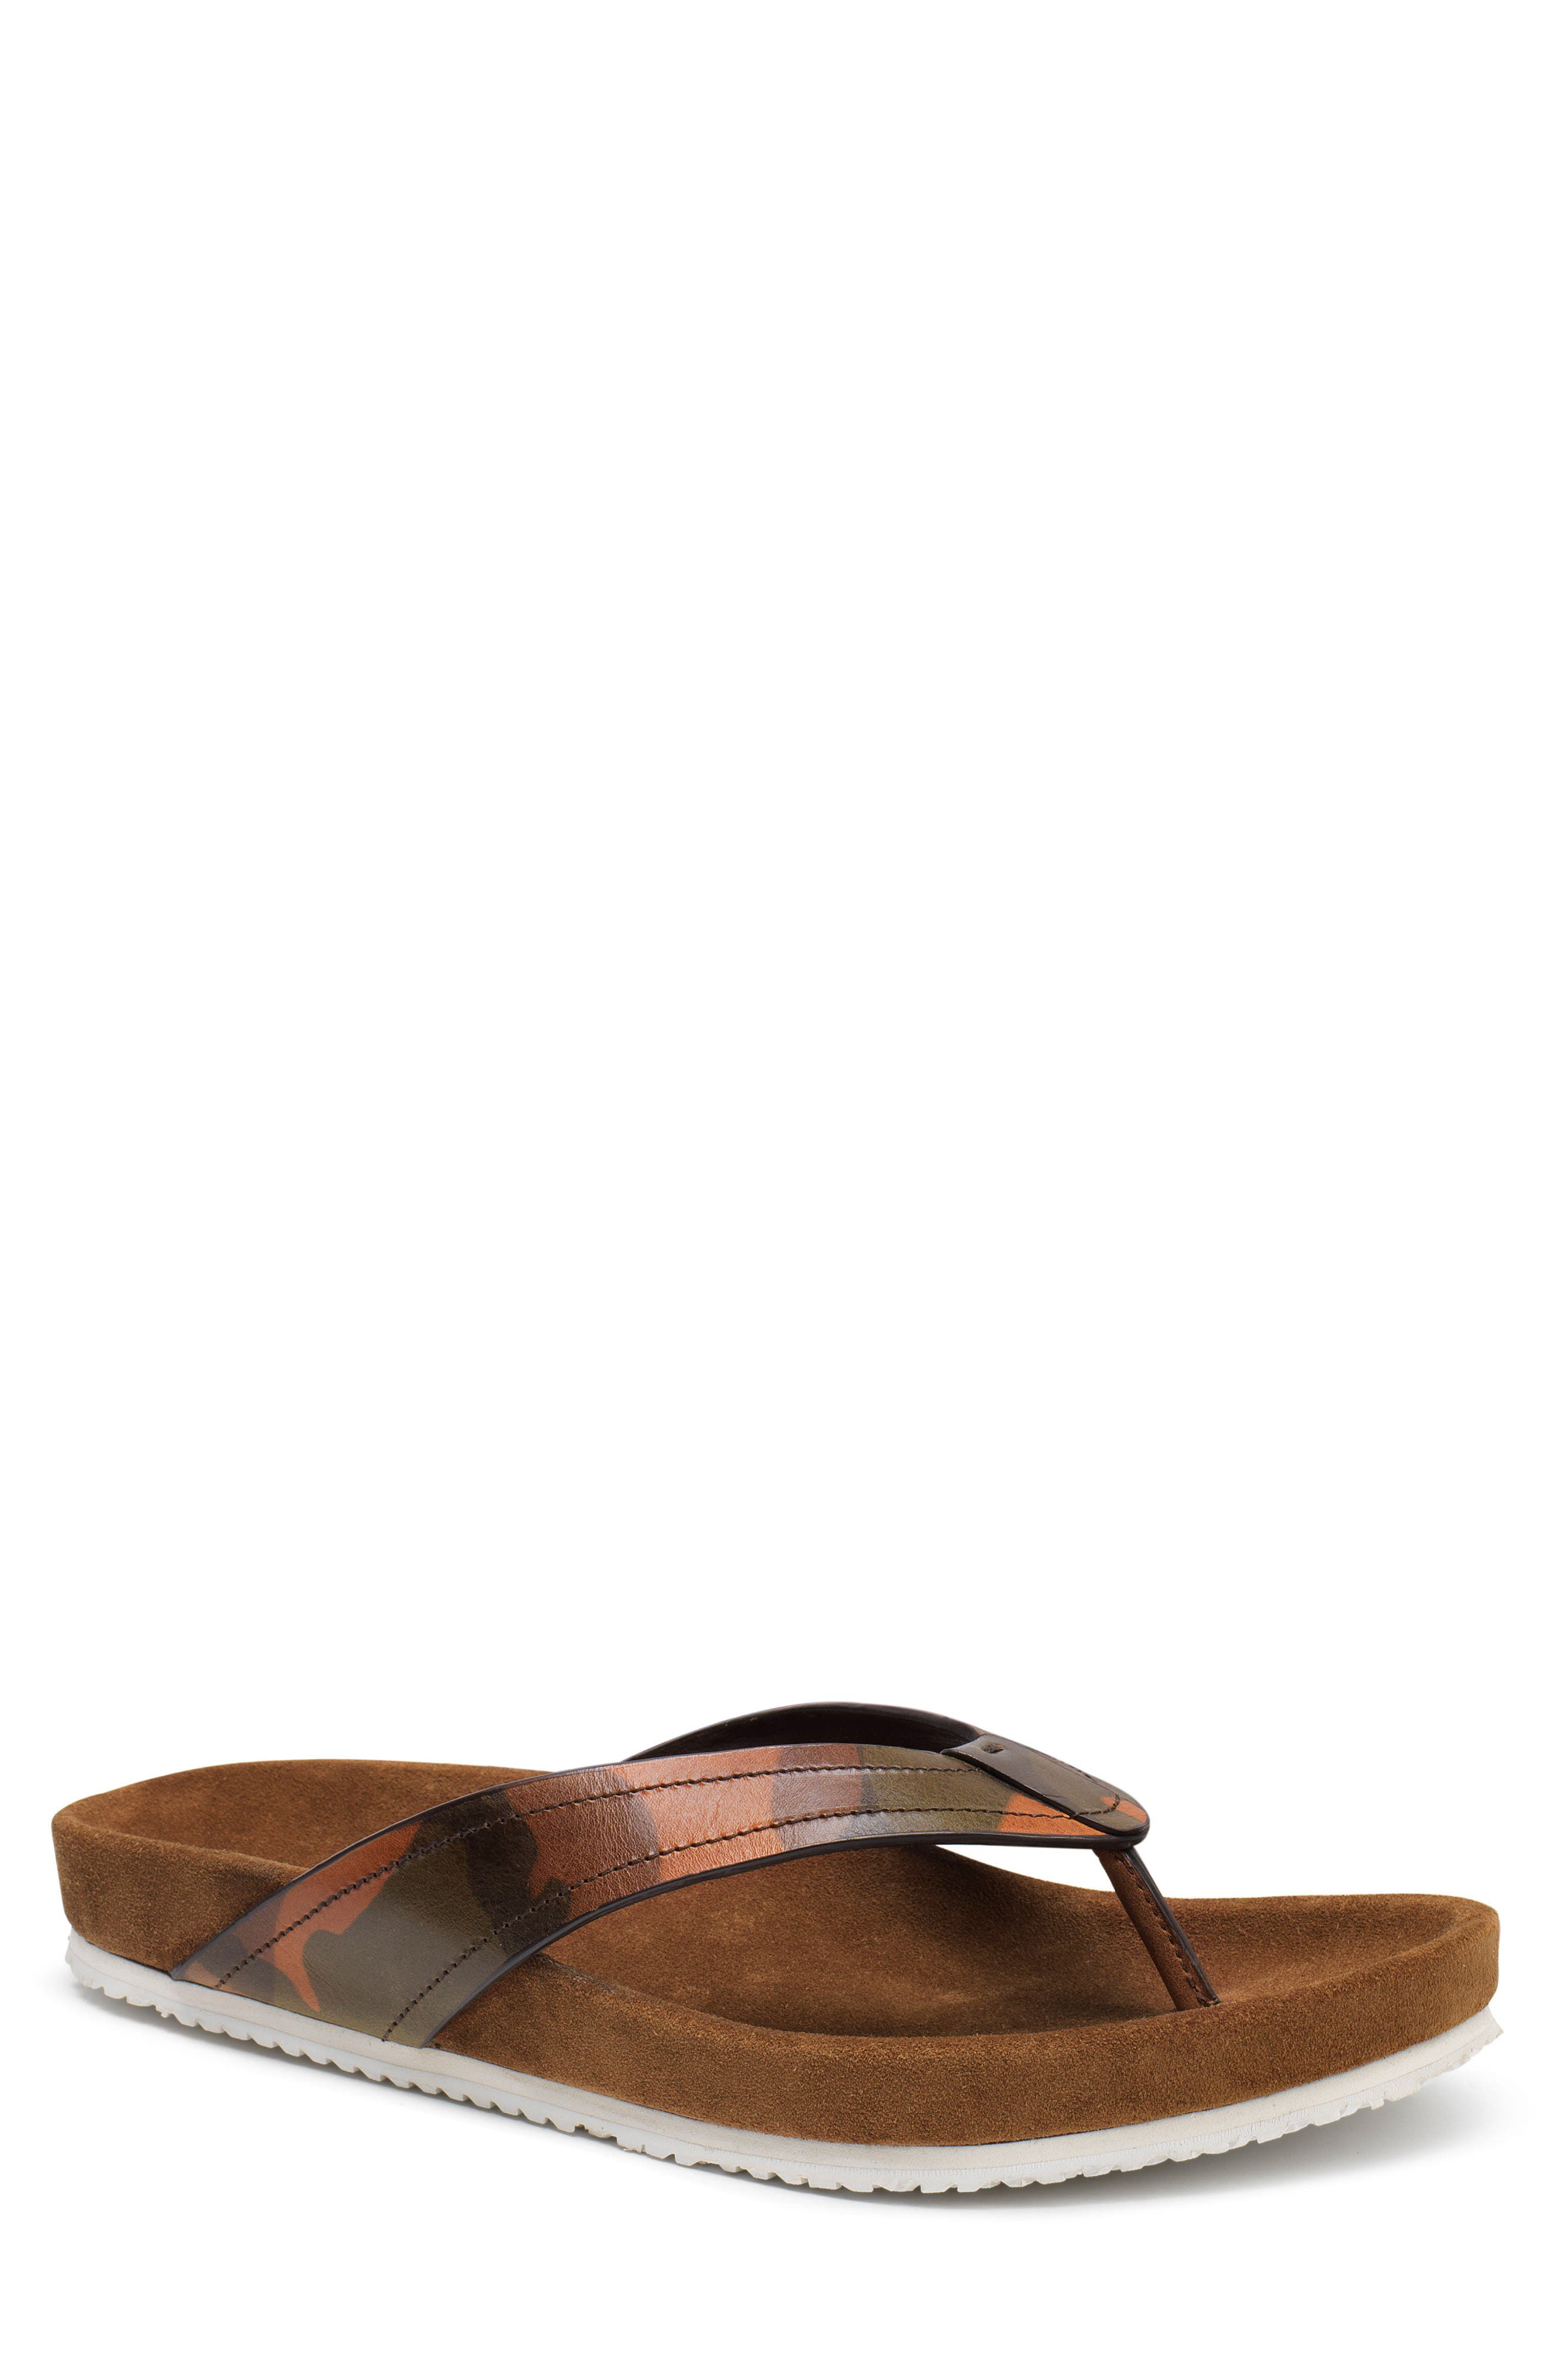 Fleming Flip Flop,                         Main,                         color, CAMOFLAGE LEATHER